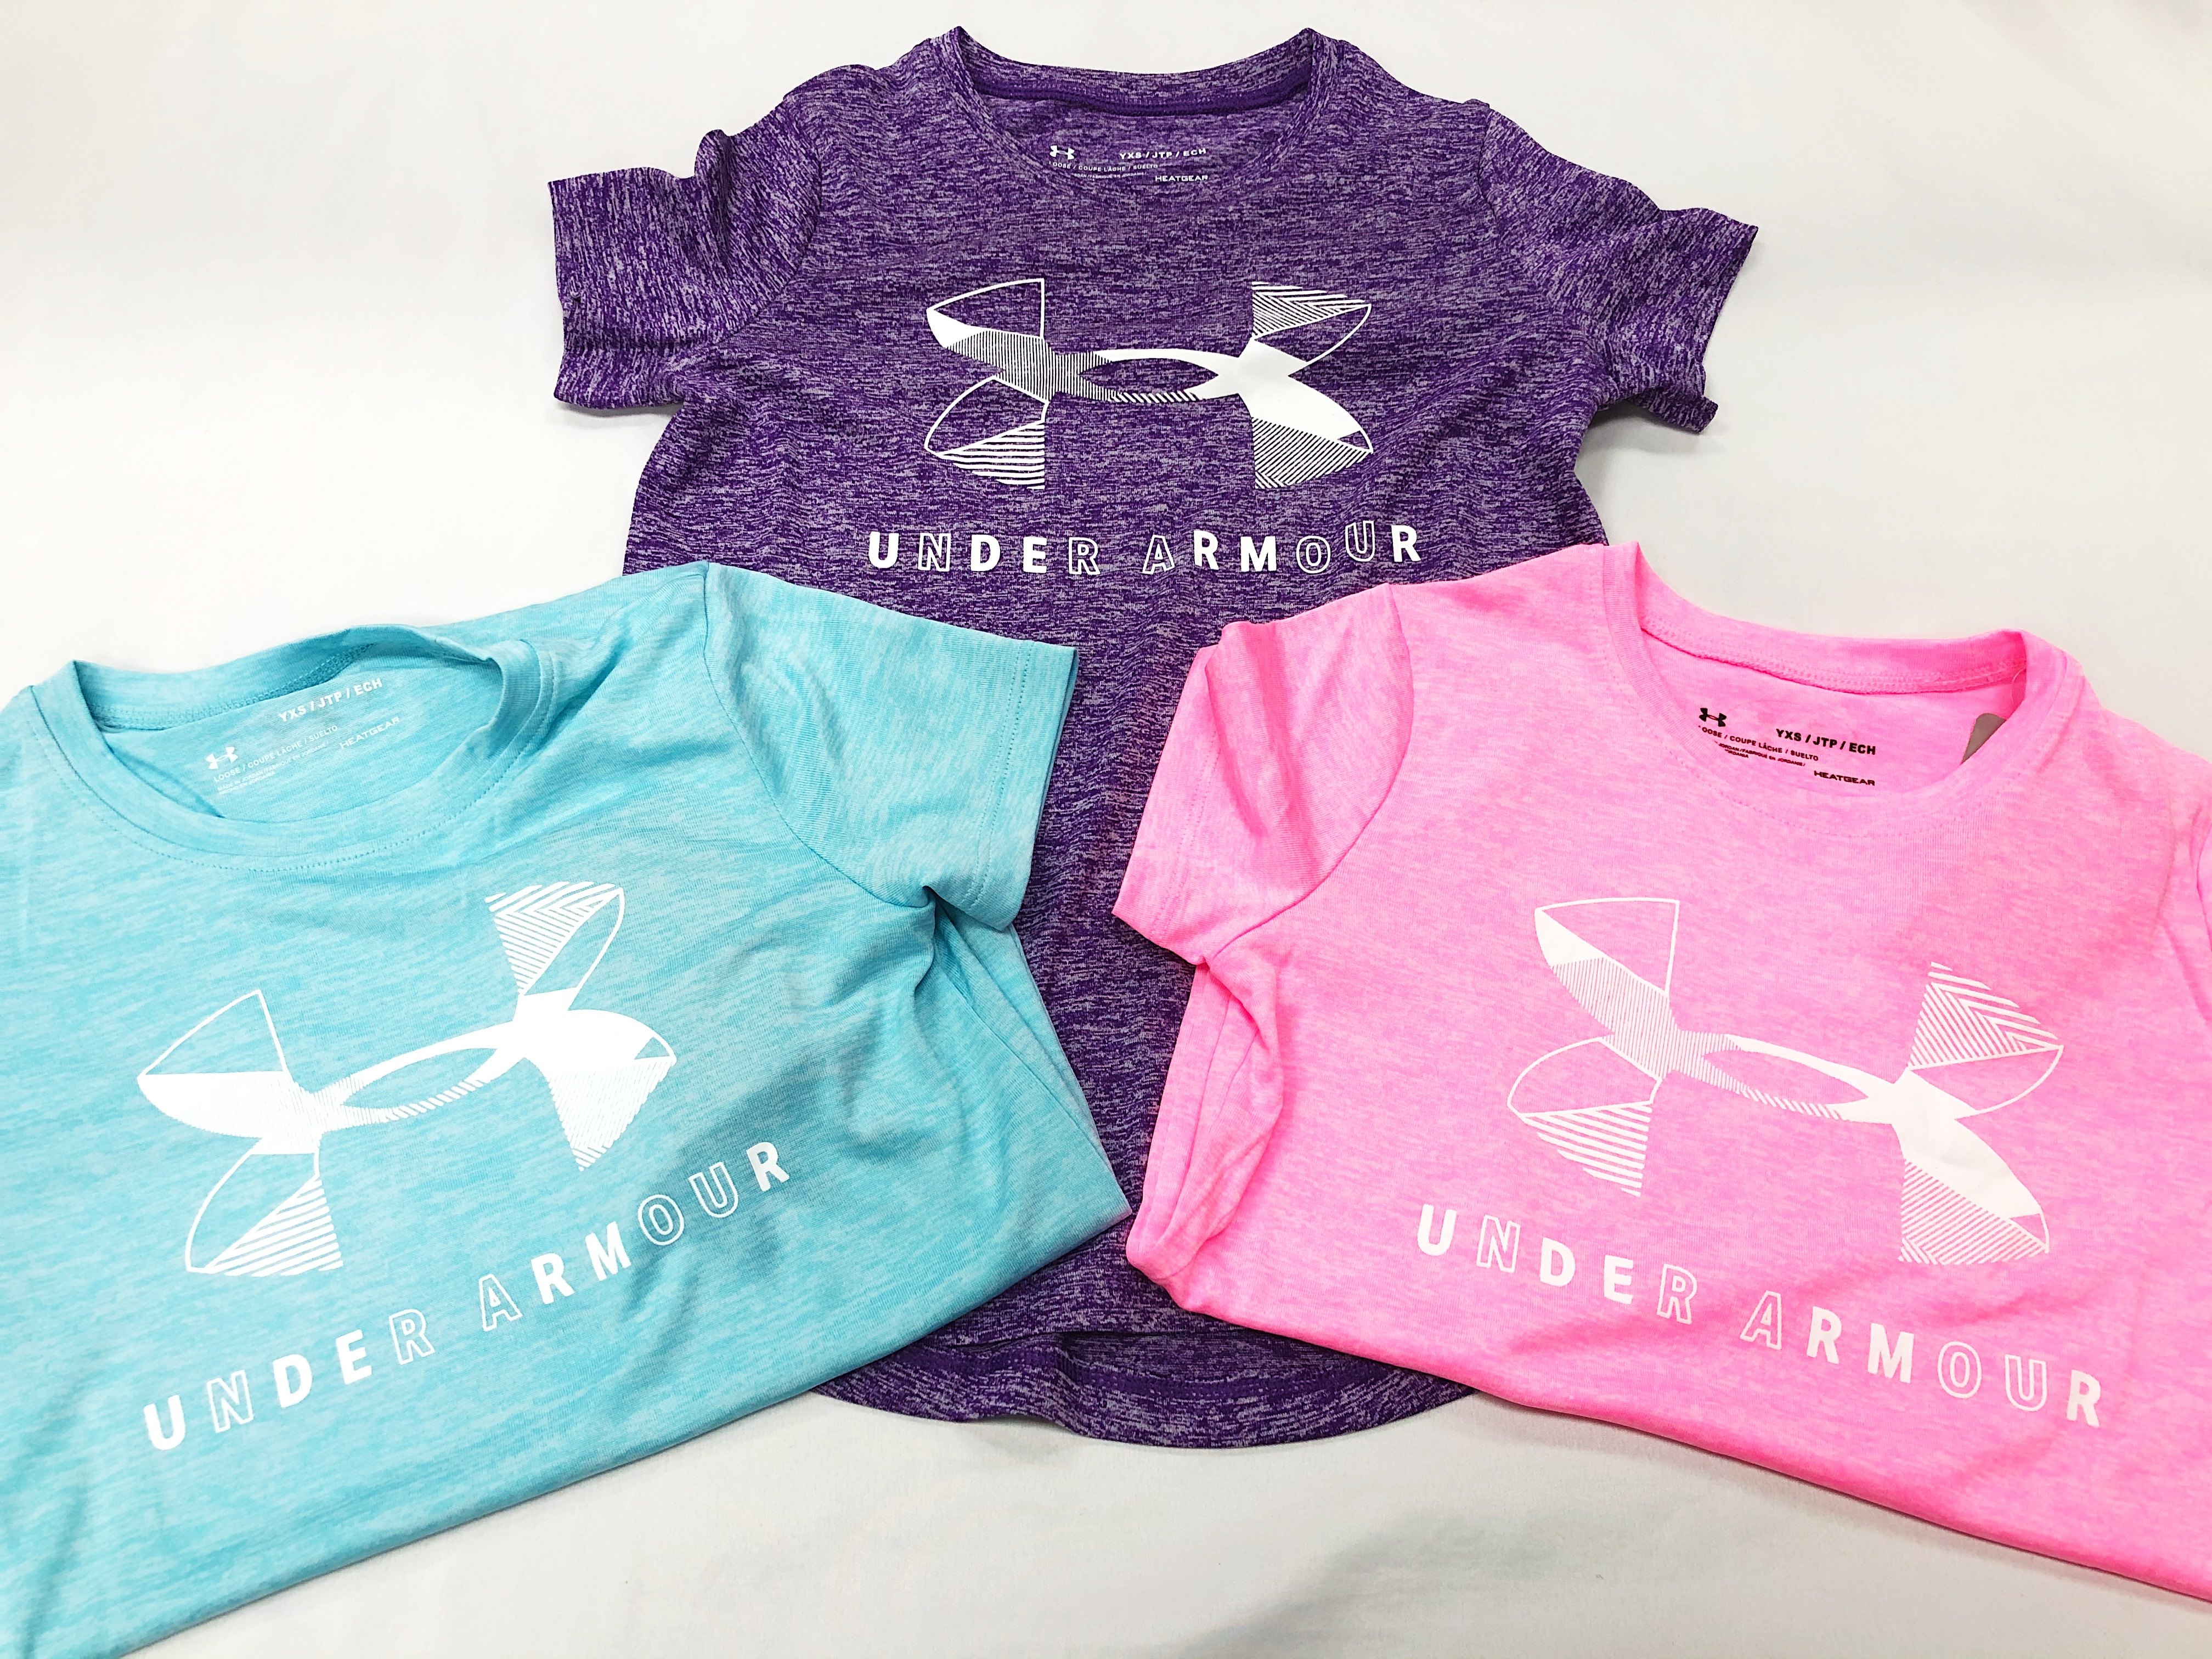 Under Armour Girls Apparel